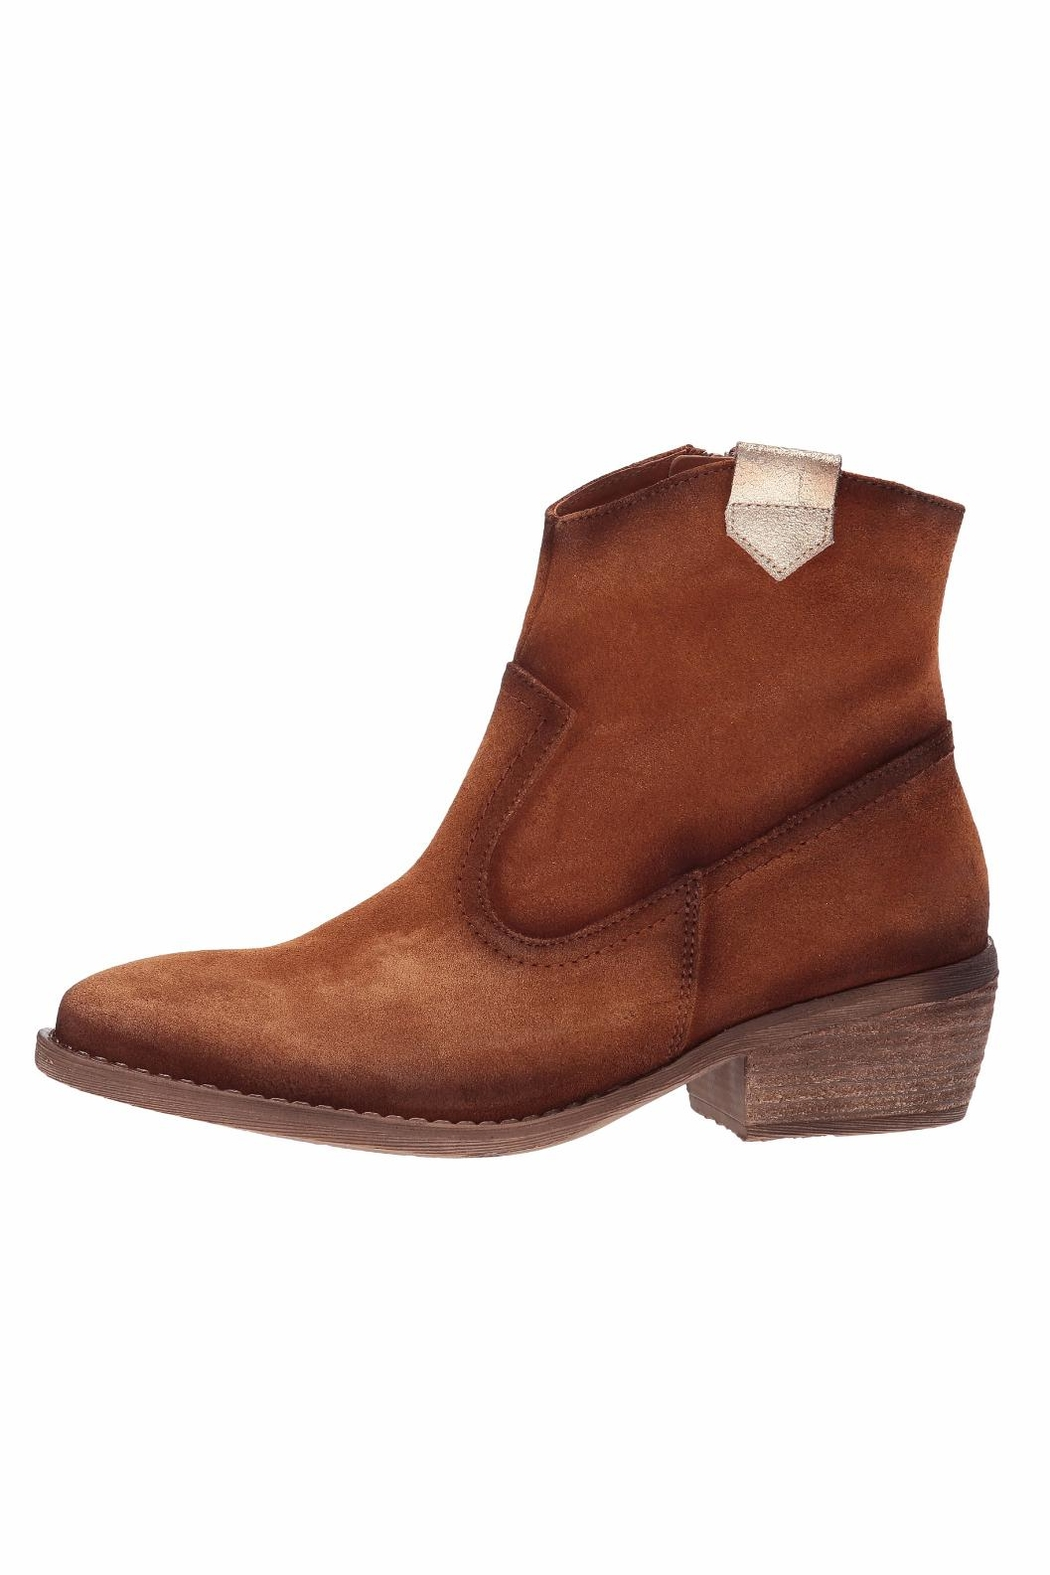 Eric Michael Val Western-Inspired Boots - Main Image